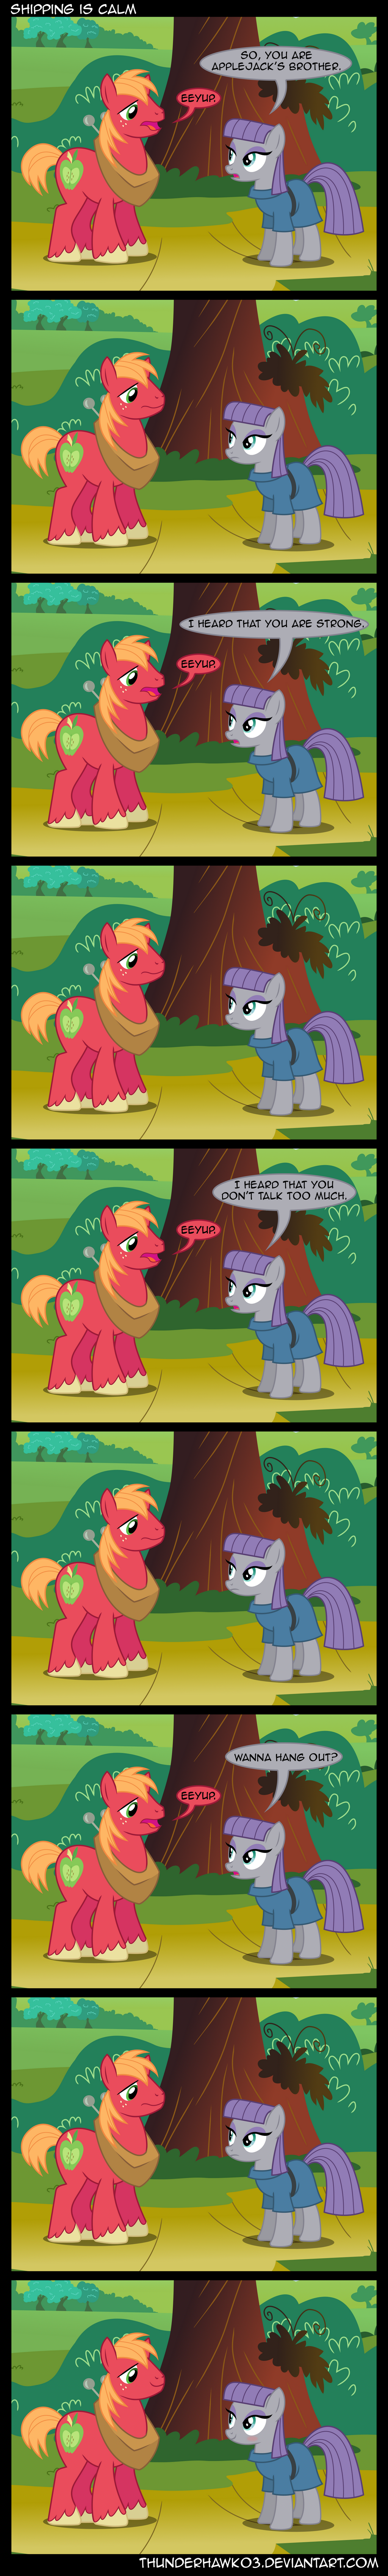 Shipping is Calm by Thunderhawk03